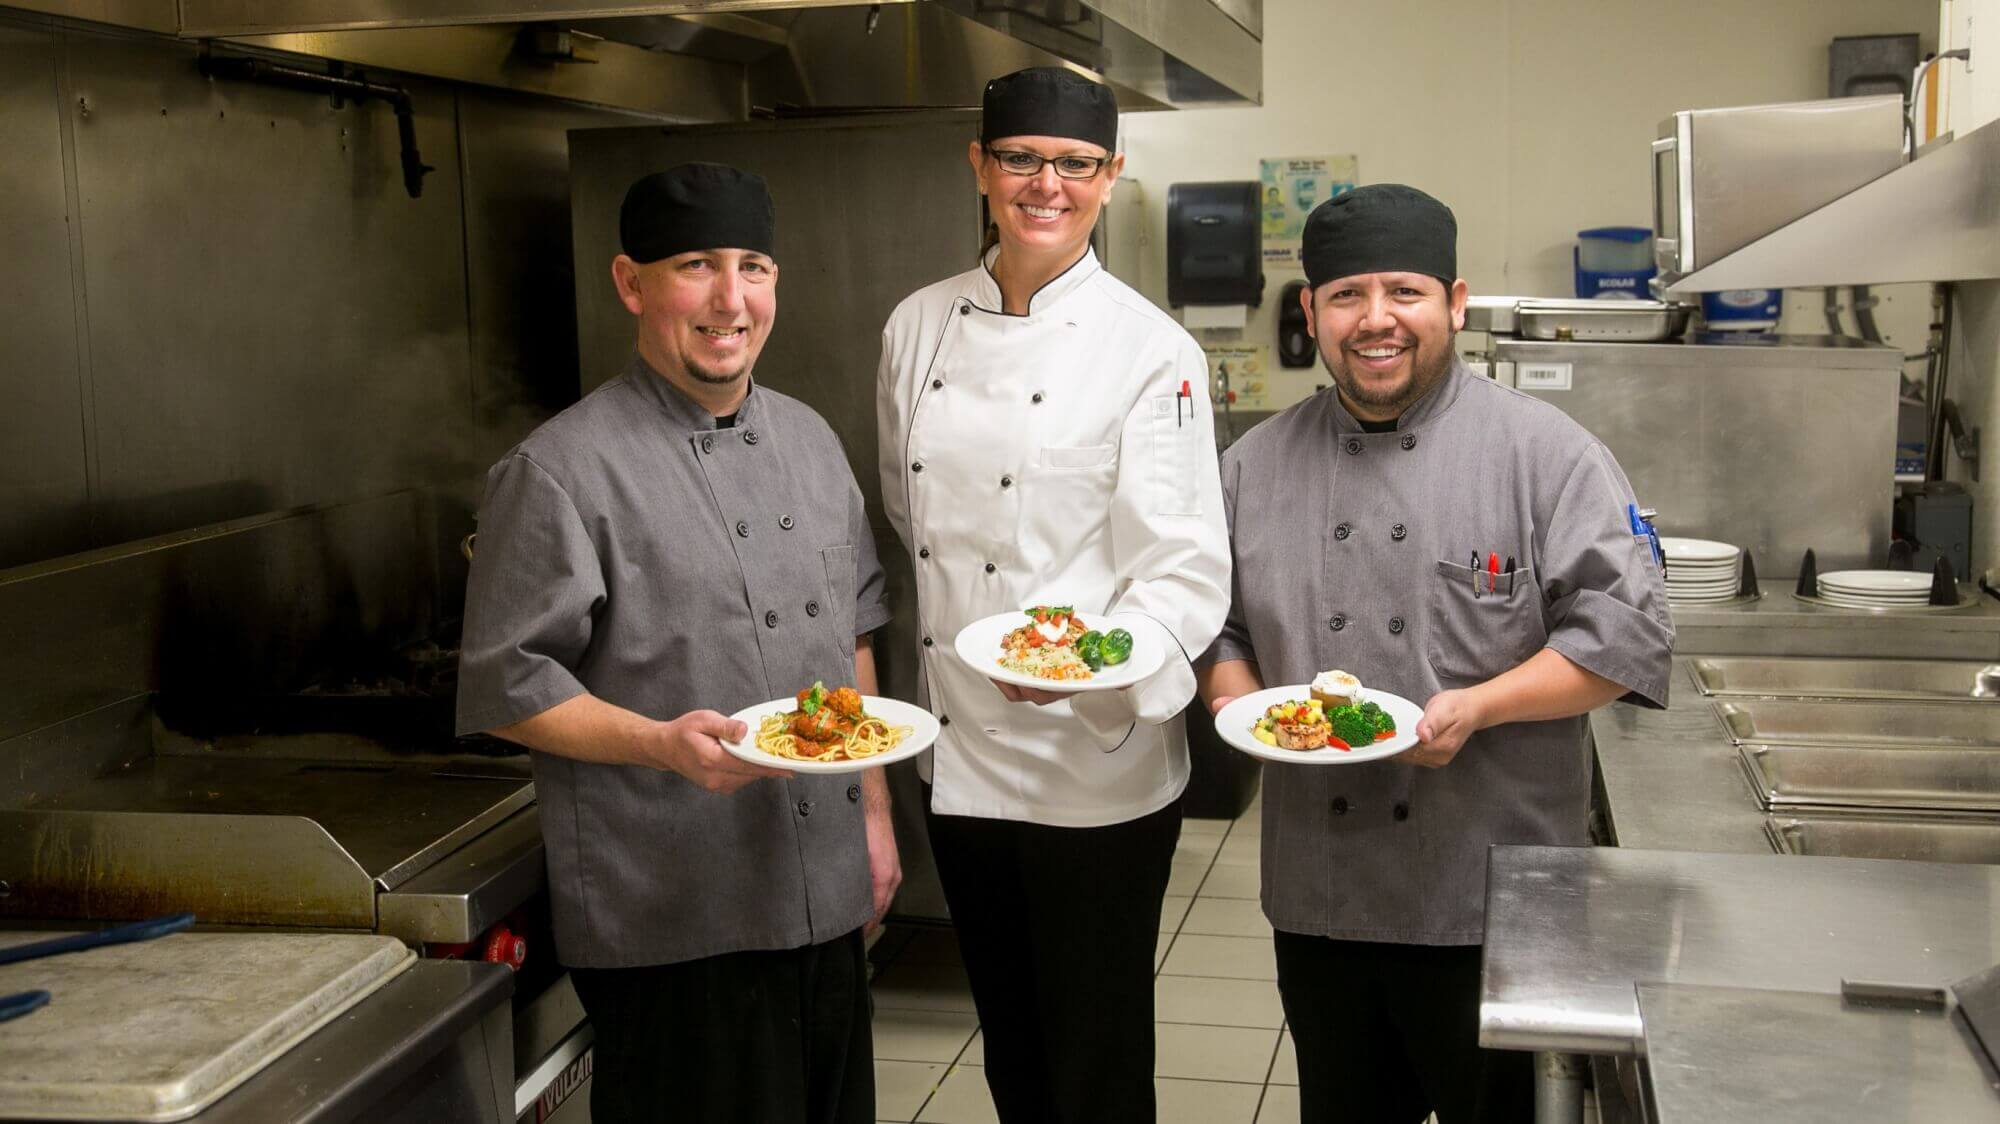 Three culinary teammates, displaying their main dishes that are about to be presented to their residents.